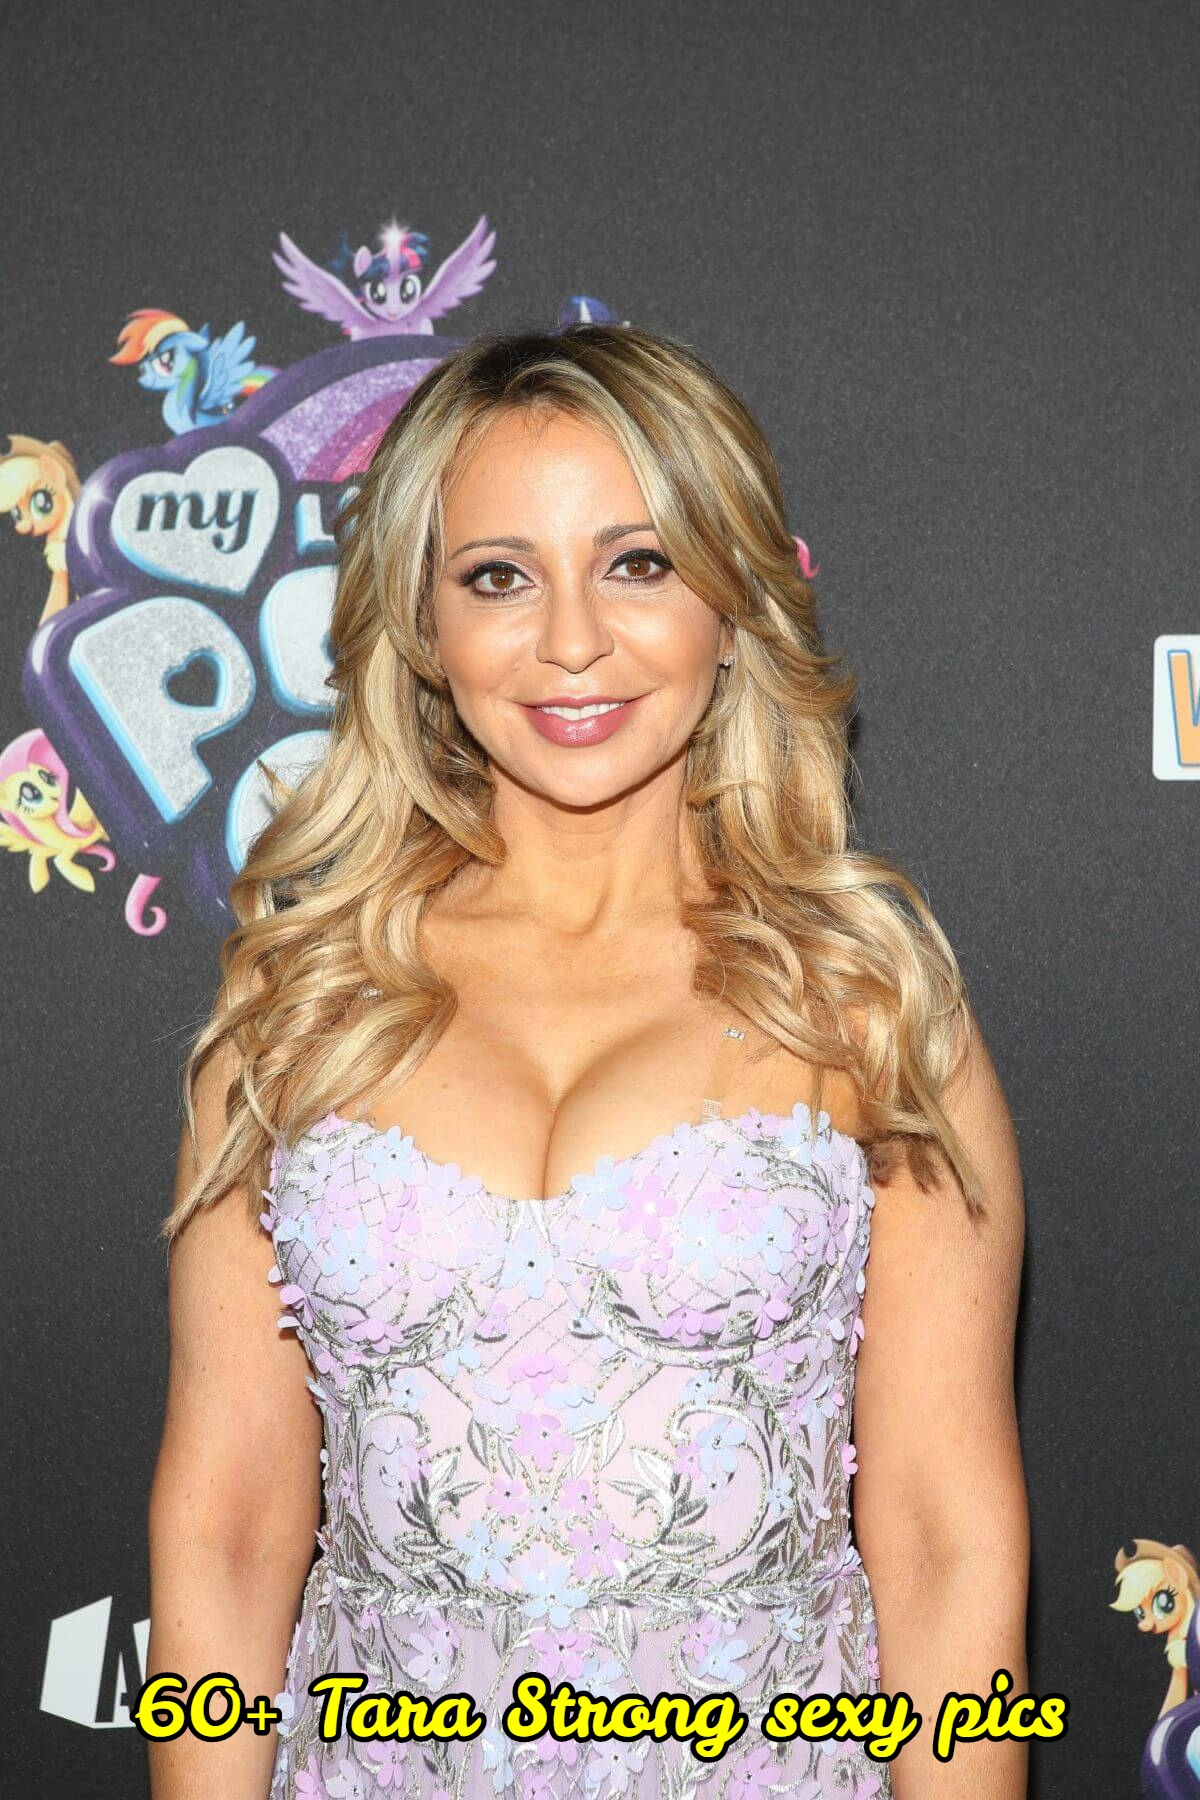 Tara Strong sexy pictures